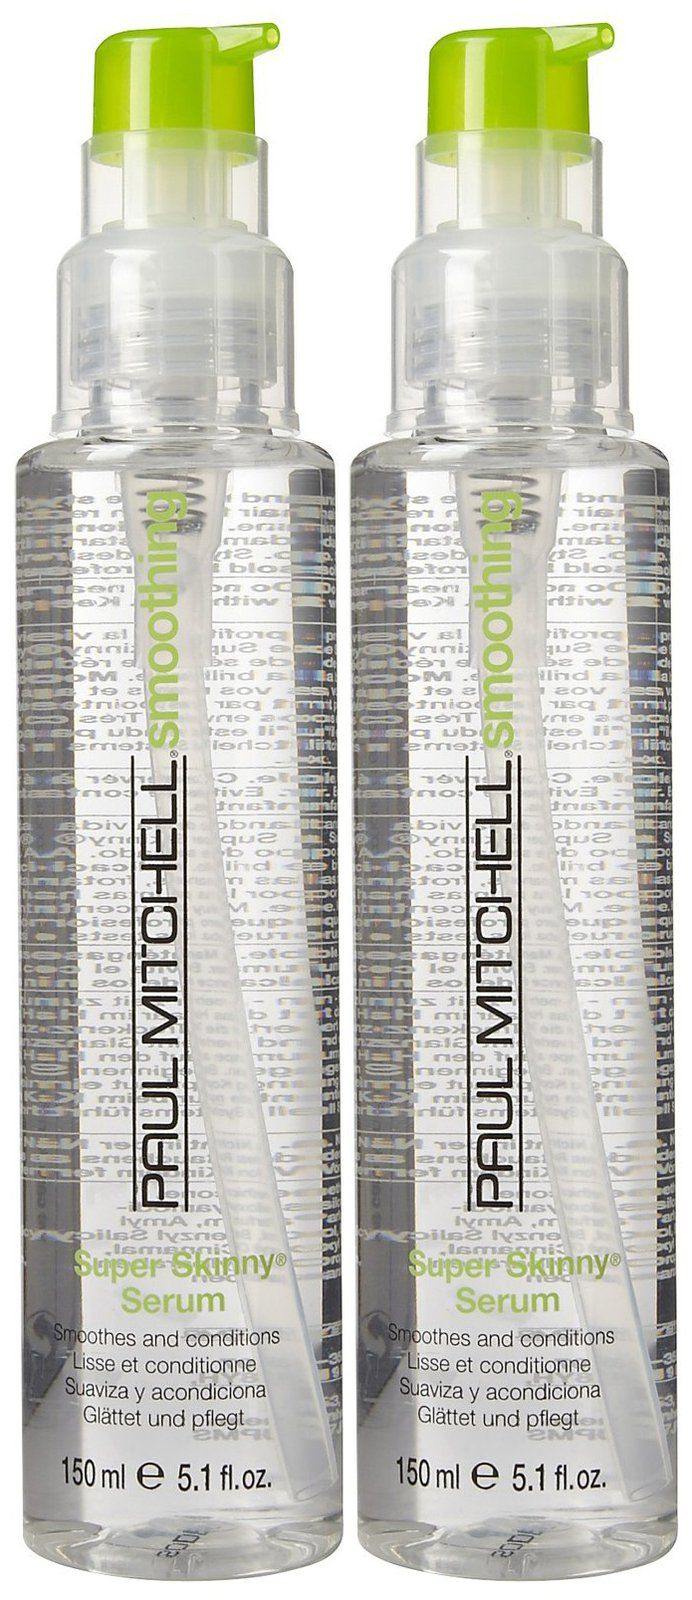 Paul Mitchell Super Skinny Serum. My sister got me hooked on this.